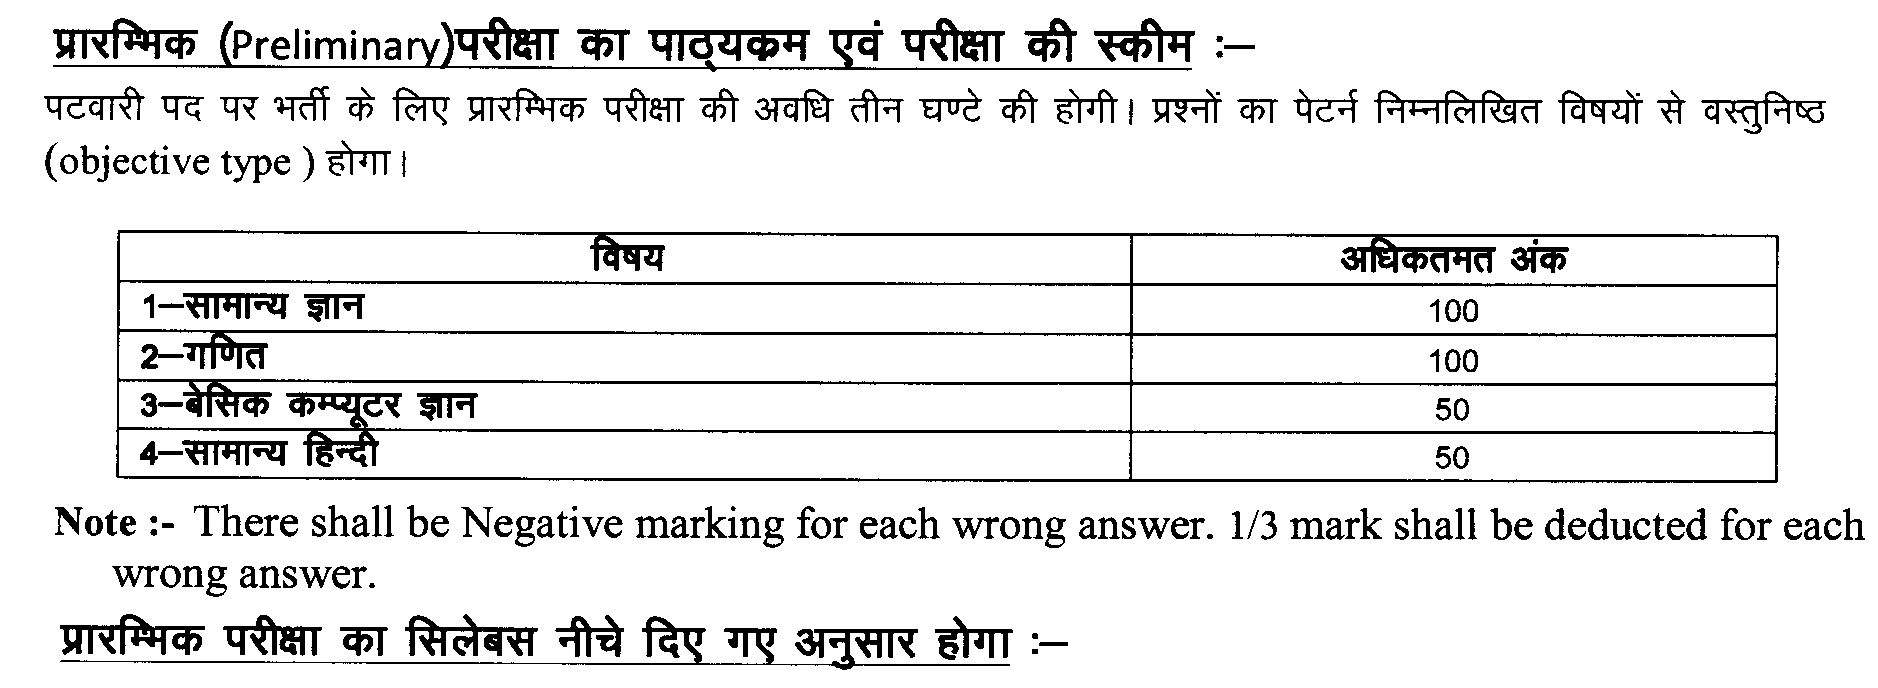 Rajasthan Patwari Exam Pattern 2017 (Preliminary)